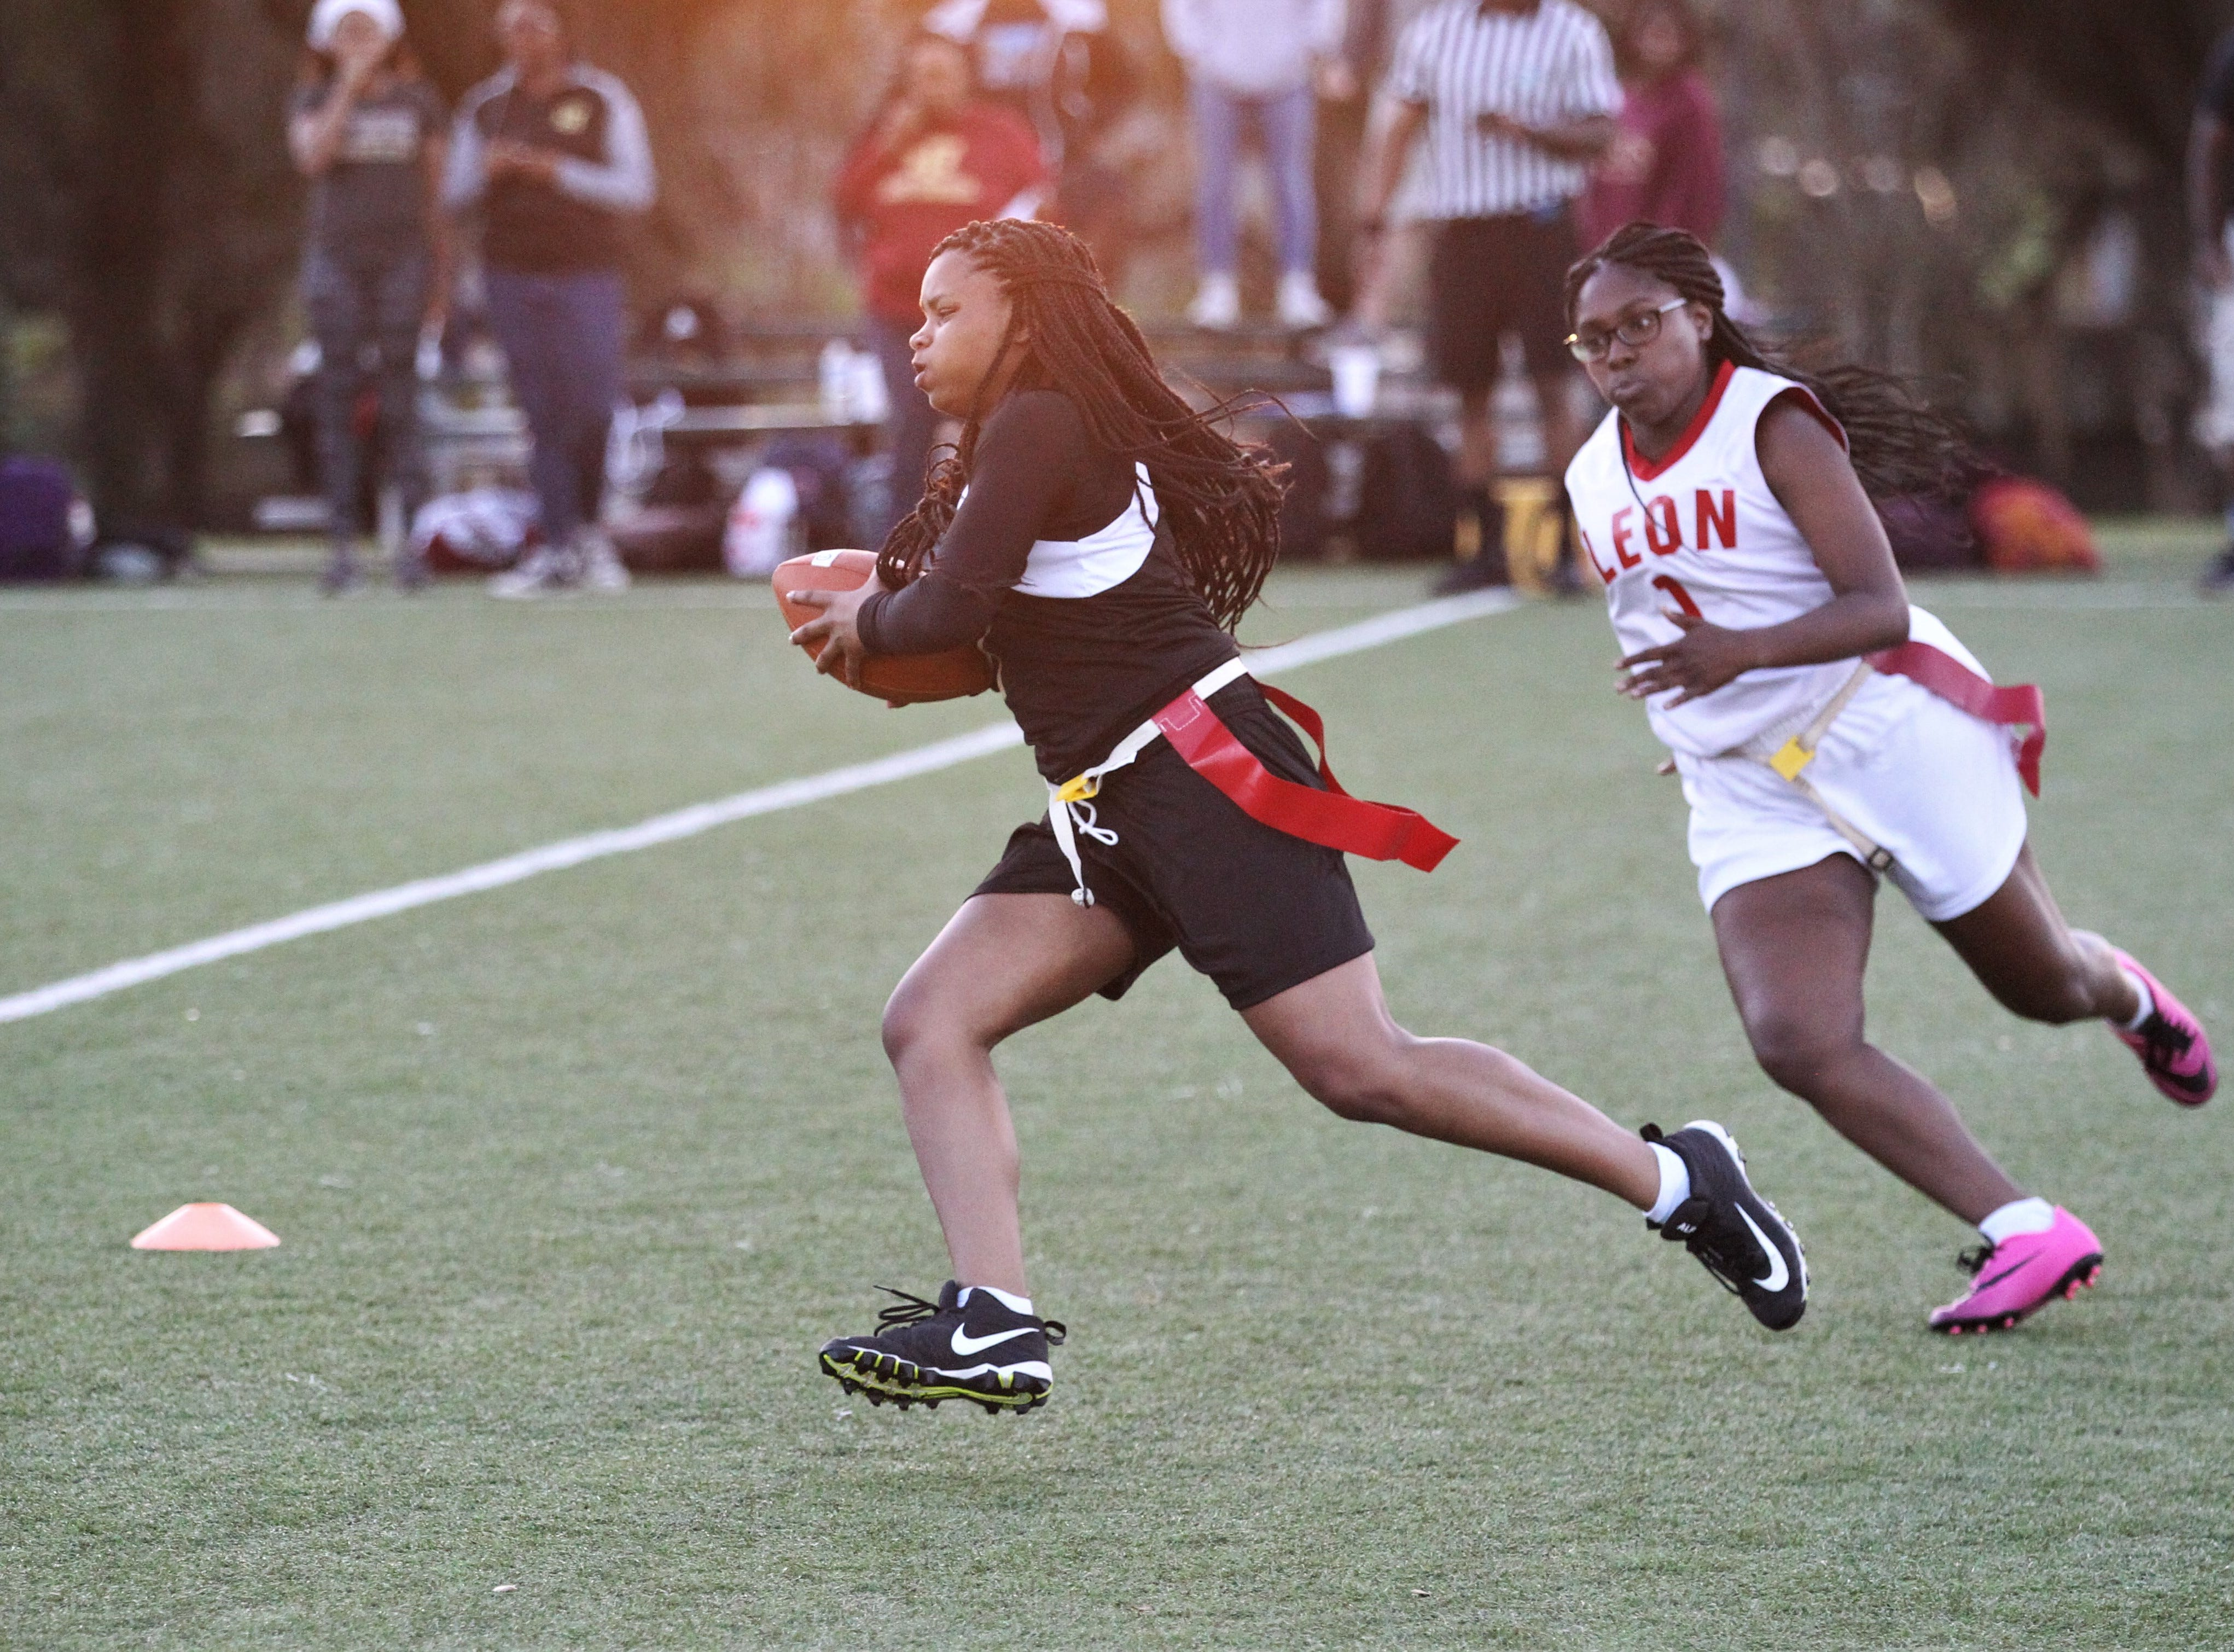 Florida High's Tamauria Youngblood runs for a gain as the Seminoles and Leon play during the 2019 flag football preseason classic at Florida A&M's intramural turf fields on Feb. 27, 2019.